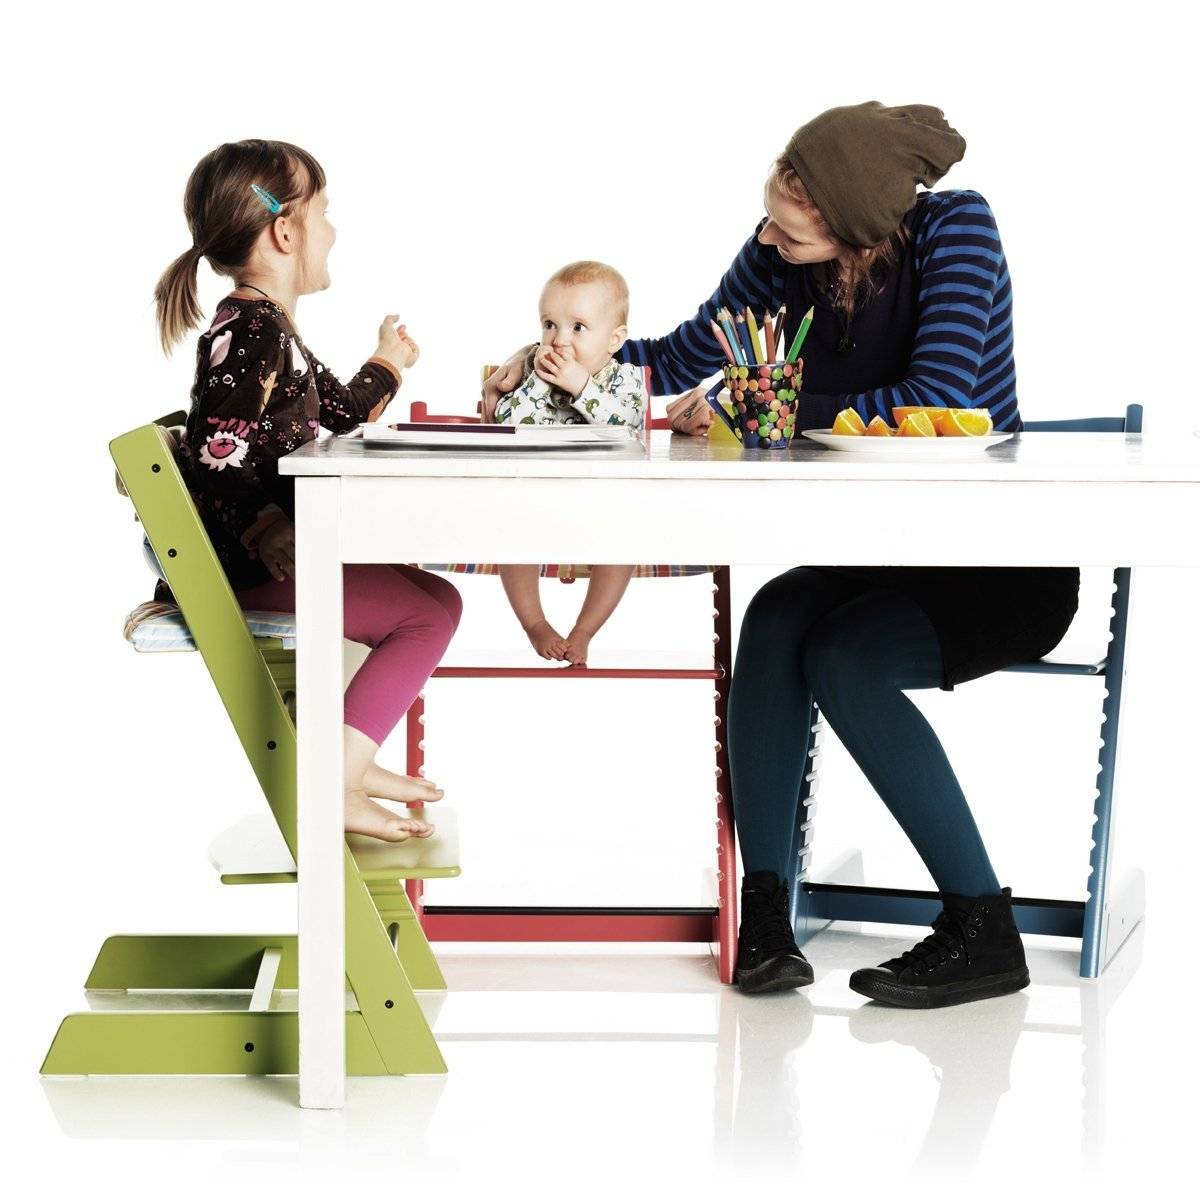 Stokke Tripp Trapp High Chair Stokke Tripp Trapp High Chair